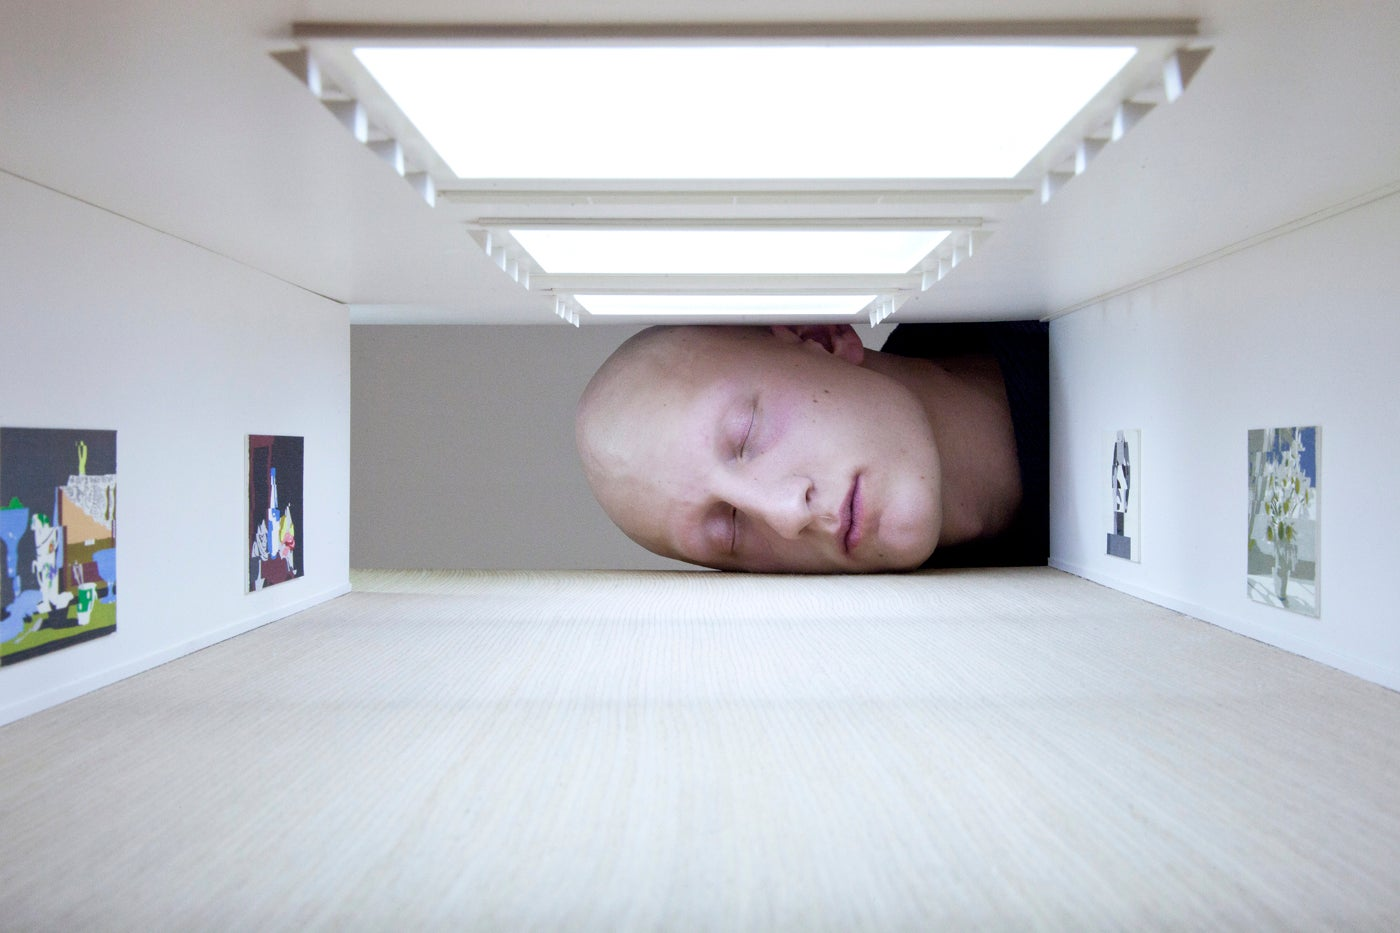 These giant heads installed in galleries will screw with how you perceive humans